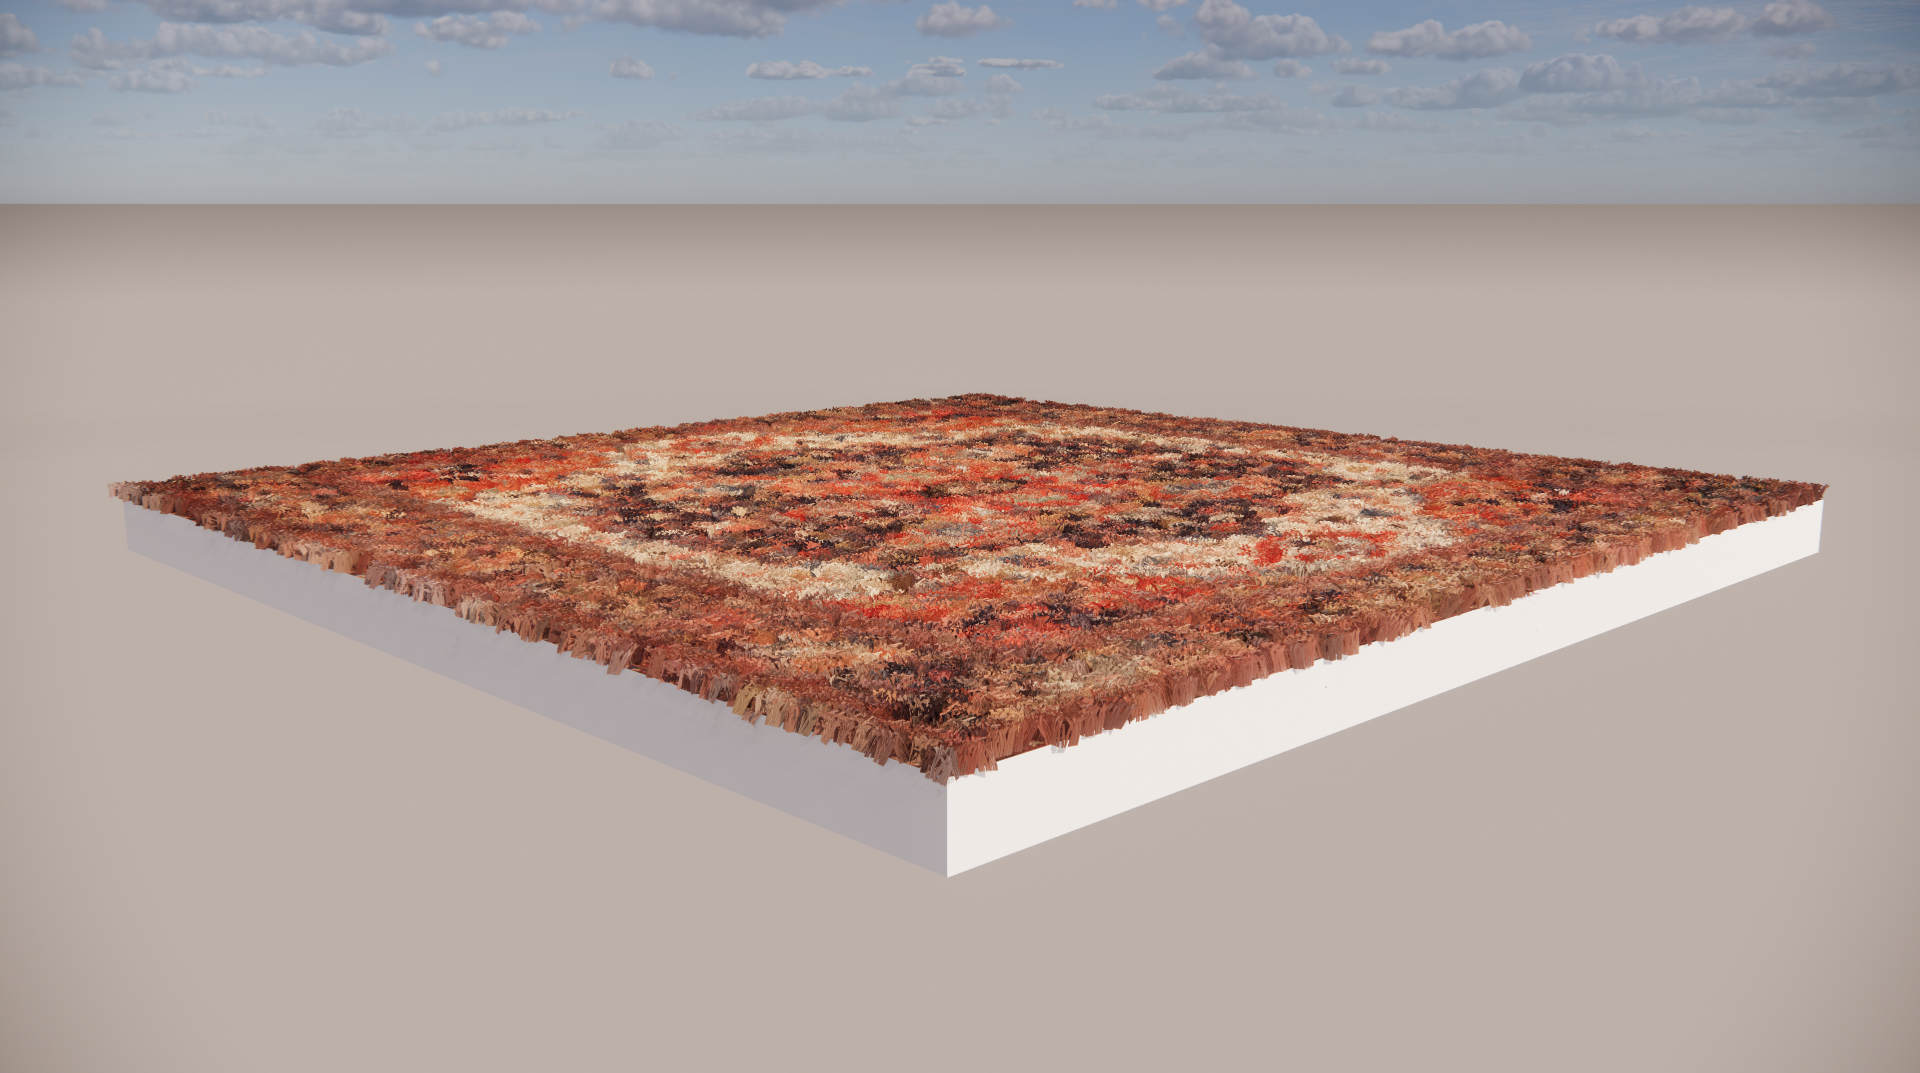 Carpet material applied in SketchUp using an underlying texture file in the Albedo slot.